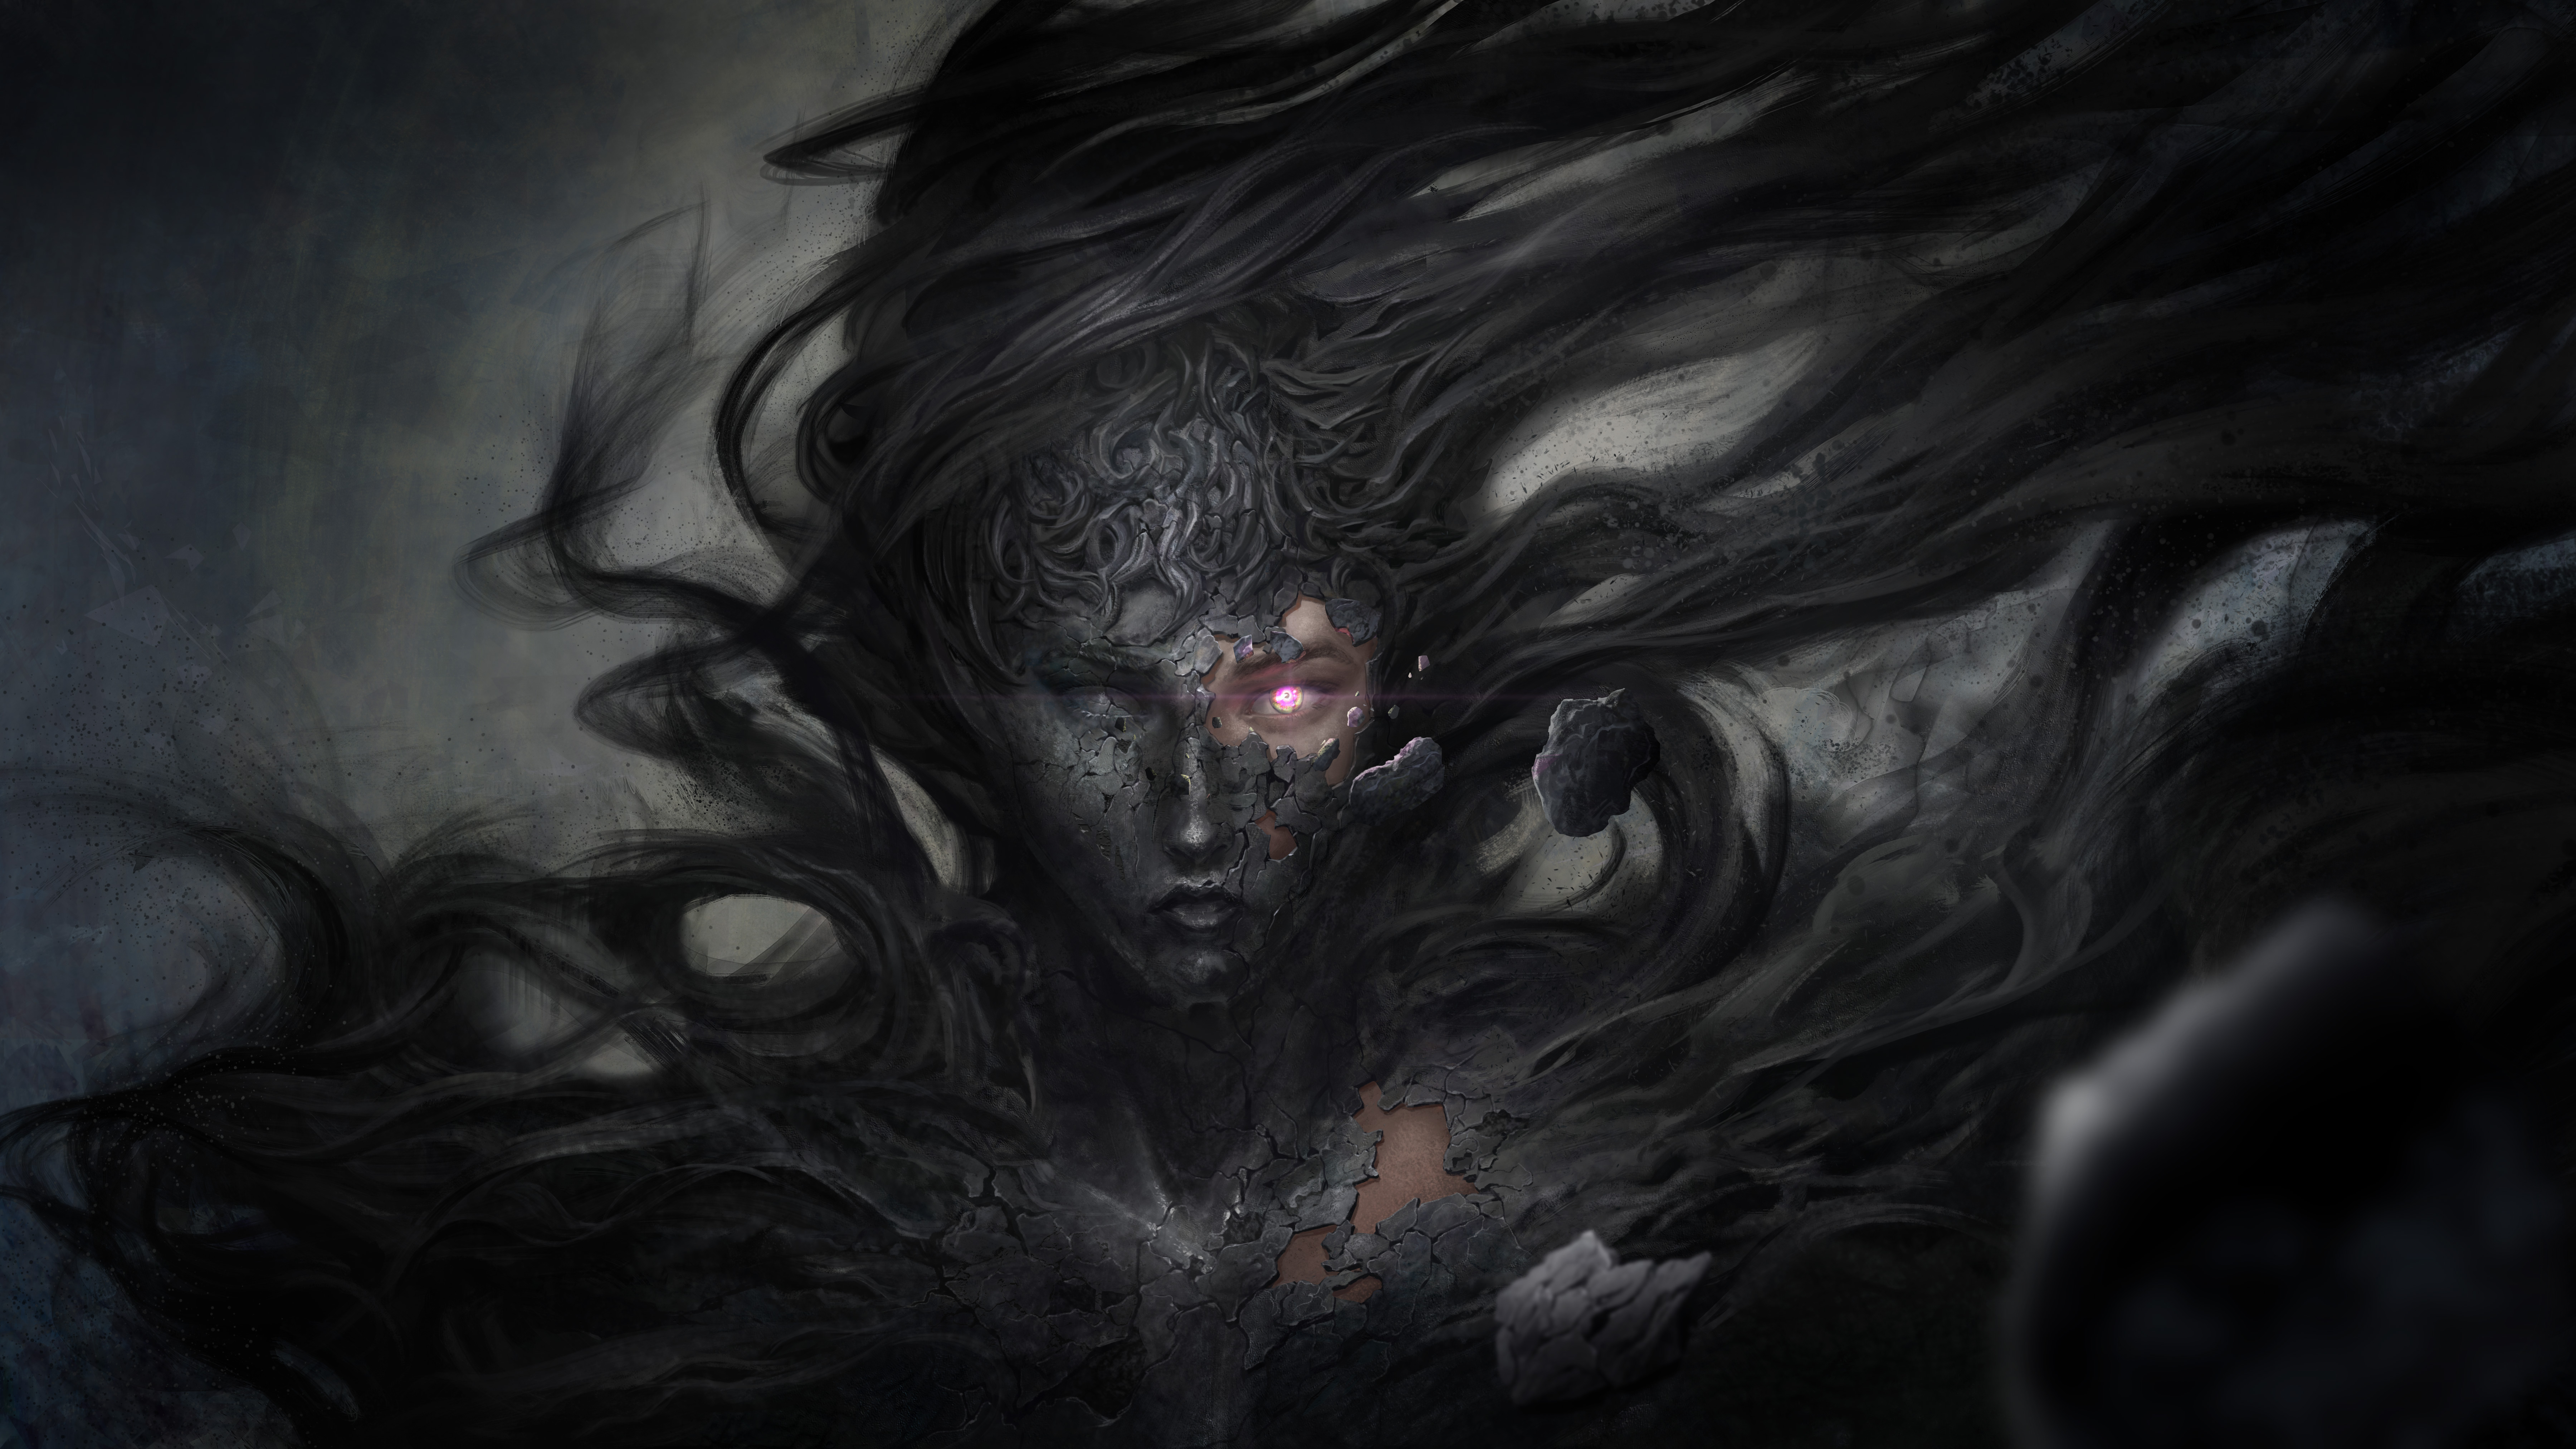 Dark Demon Fantasy Witch 8k Hd Artist 4k Wallpapers Images Backgrounds Photos And Pictures